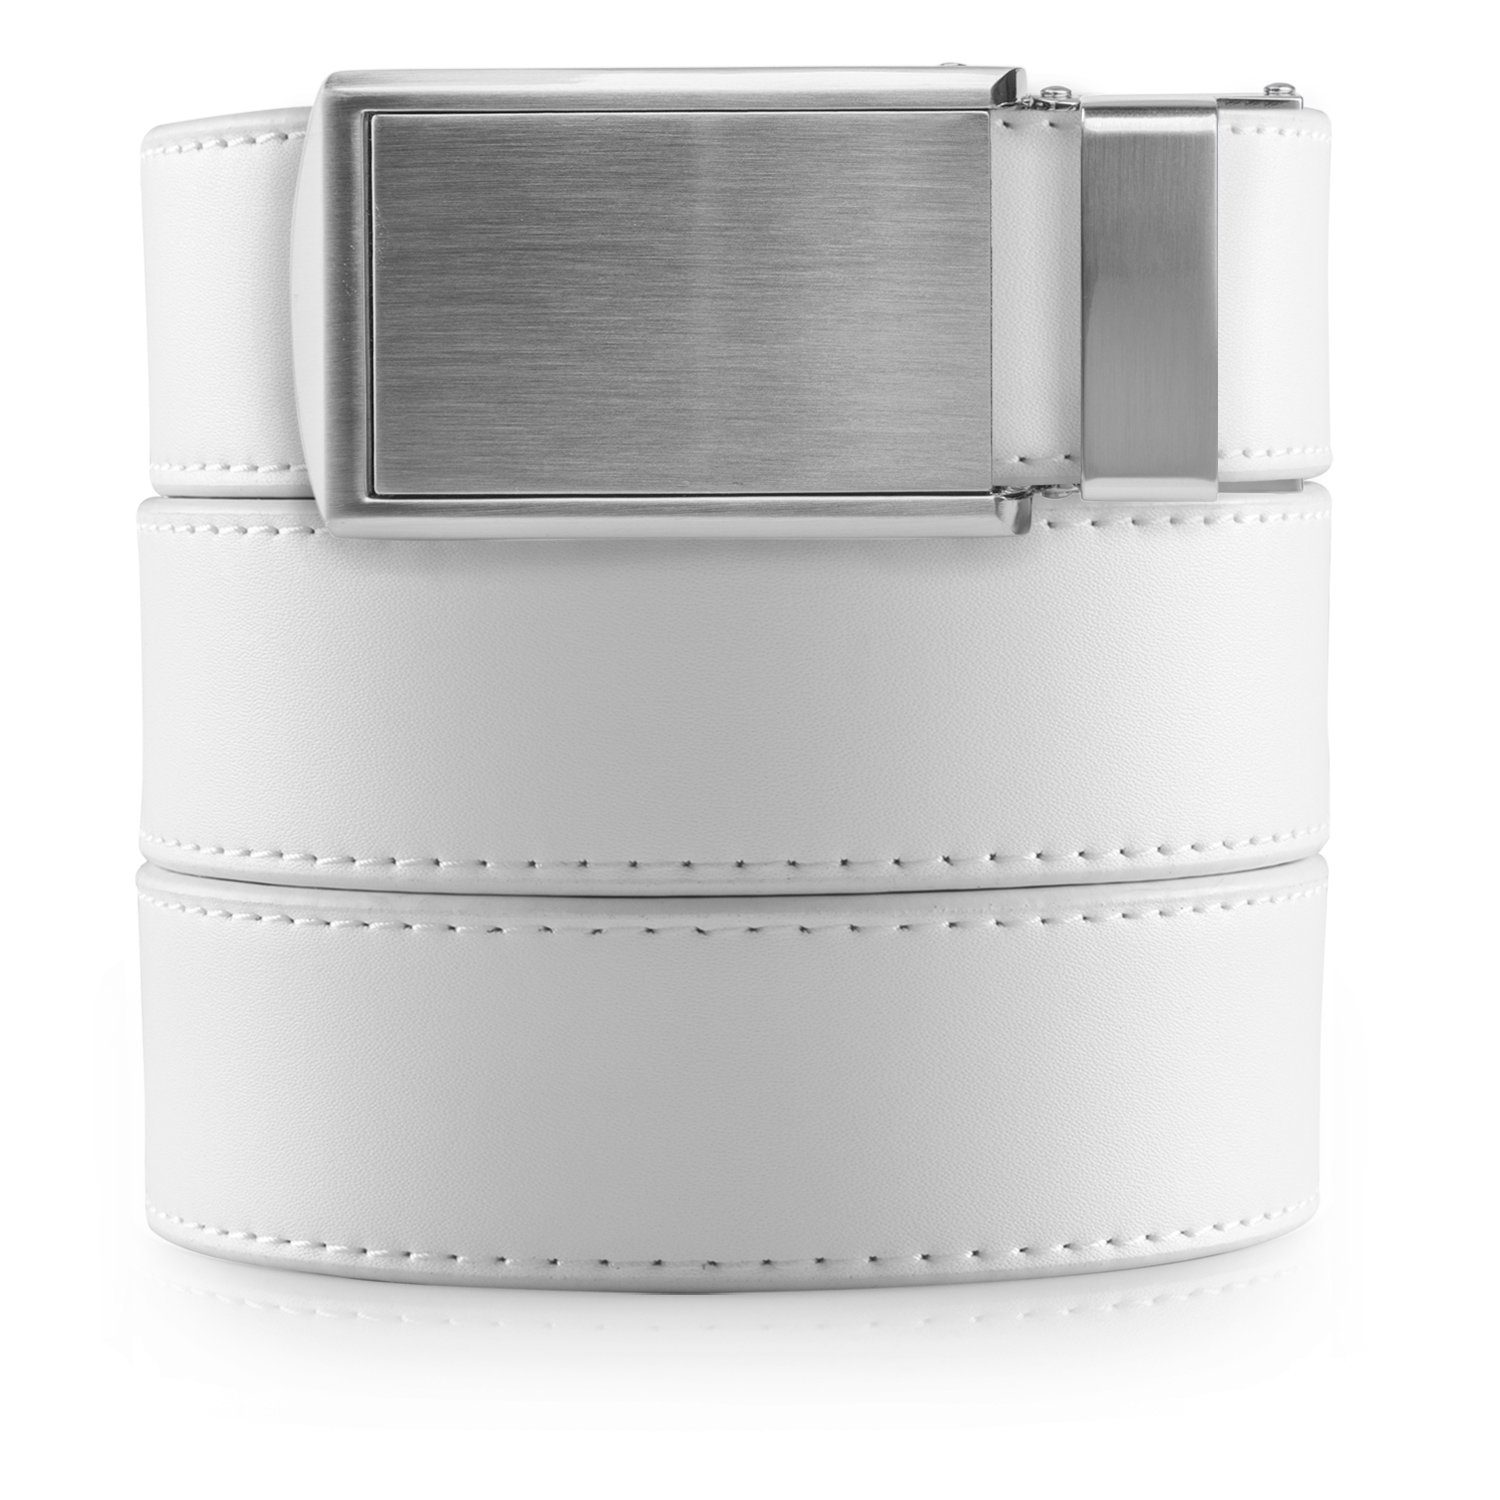 SlideBelts Men's Vegan Leather Belt without Holes - Silver Buckle/White Leather (Trim-to-fit: Up to 48'' Waist)